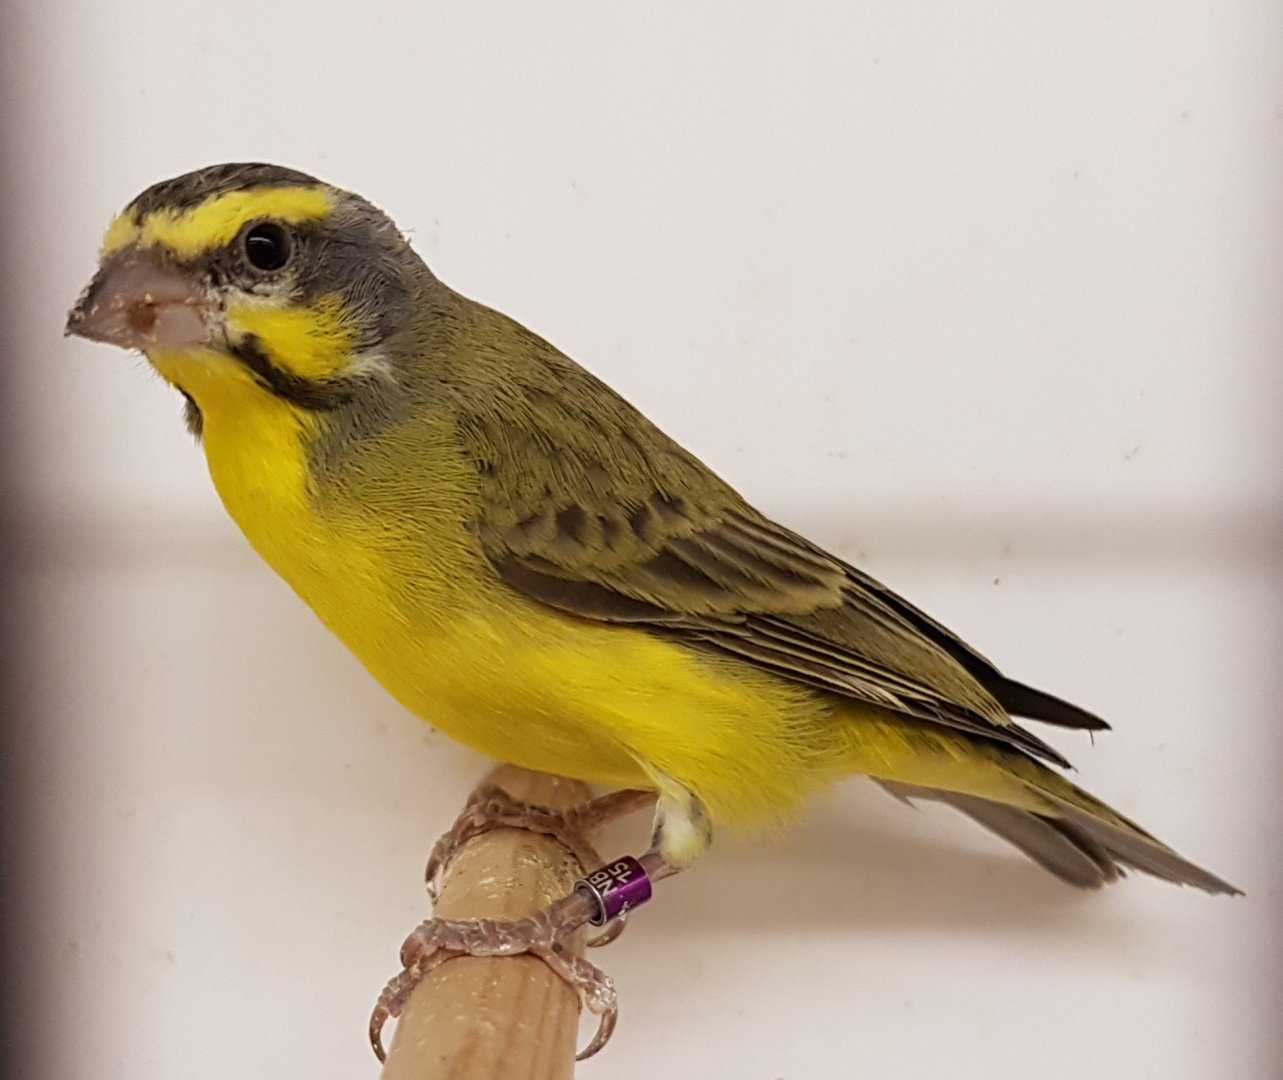 Green Singing Finch Aka Yellow Fronted Canary Zoochat